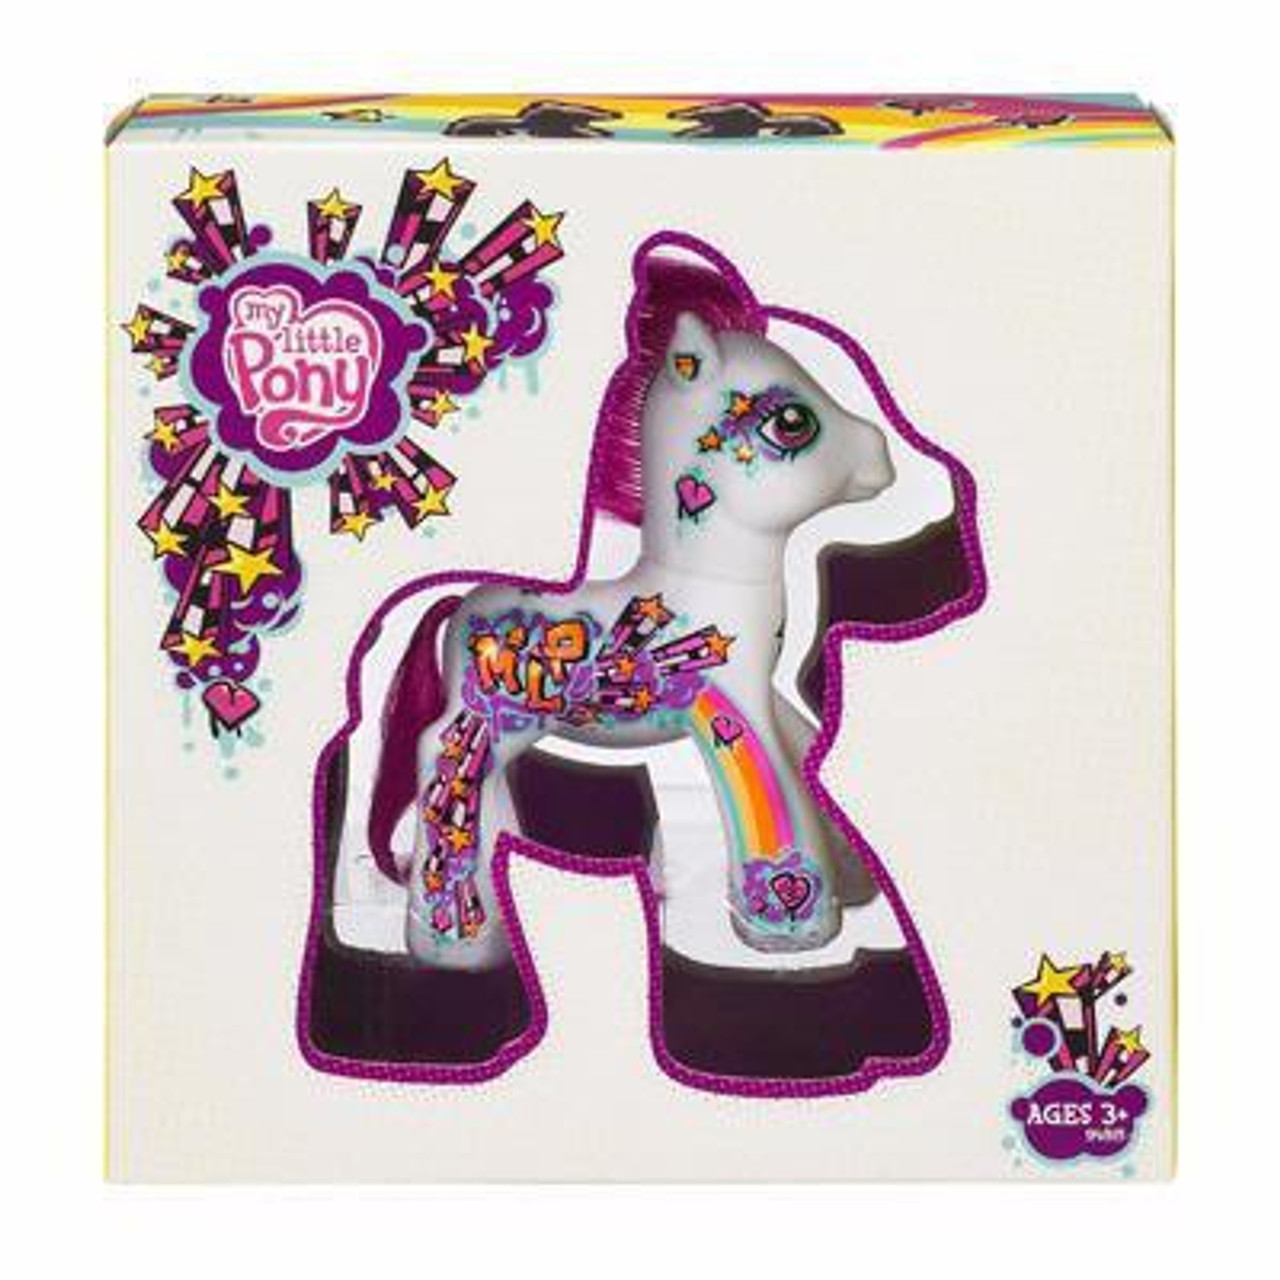 My Little Pony Exclusives Pony Power Exclusive Figure